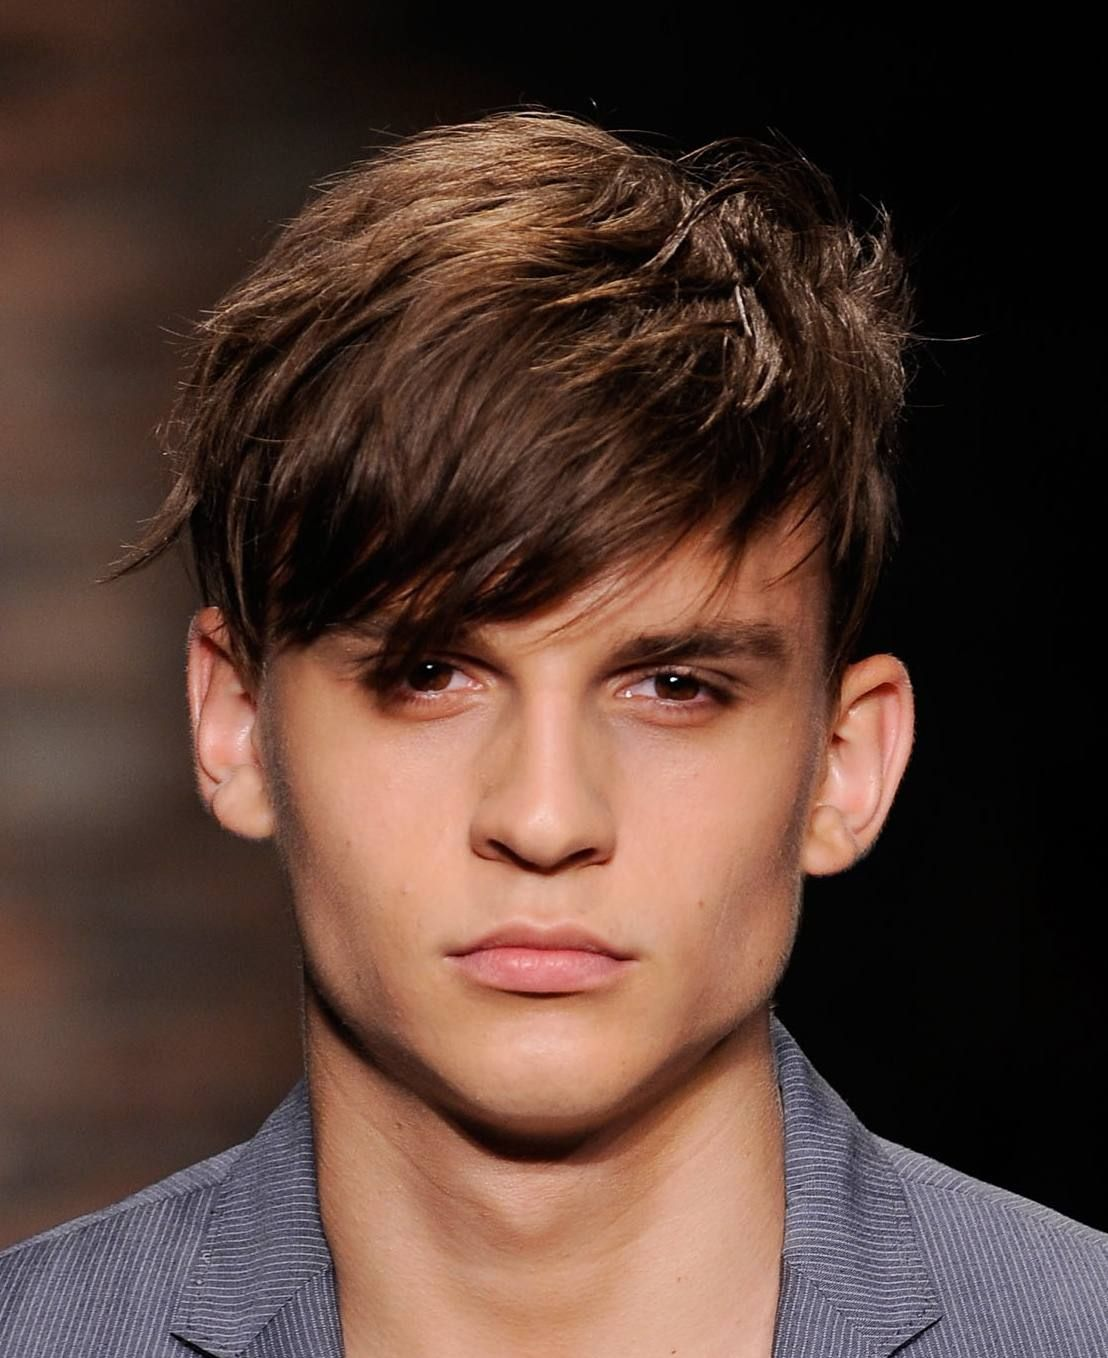 15 hottest longontop hairstyles for men in 2020 young